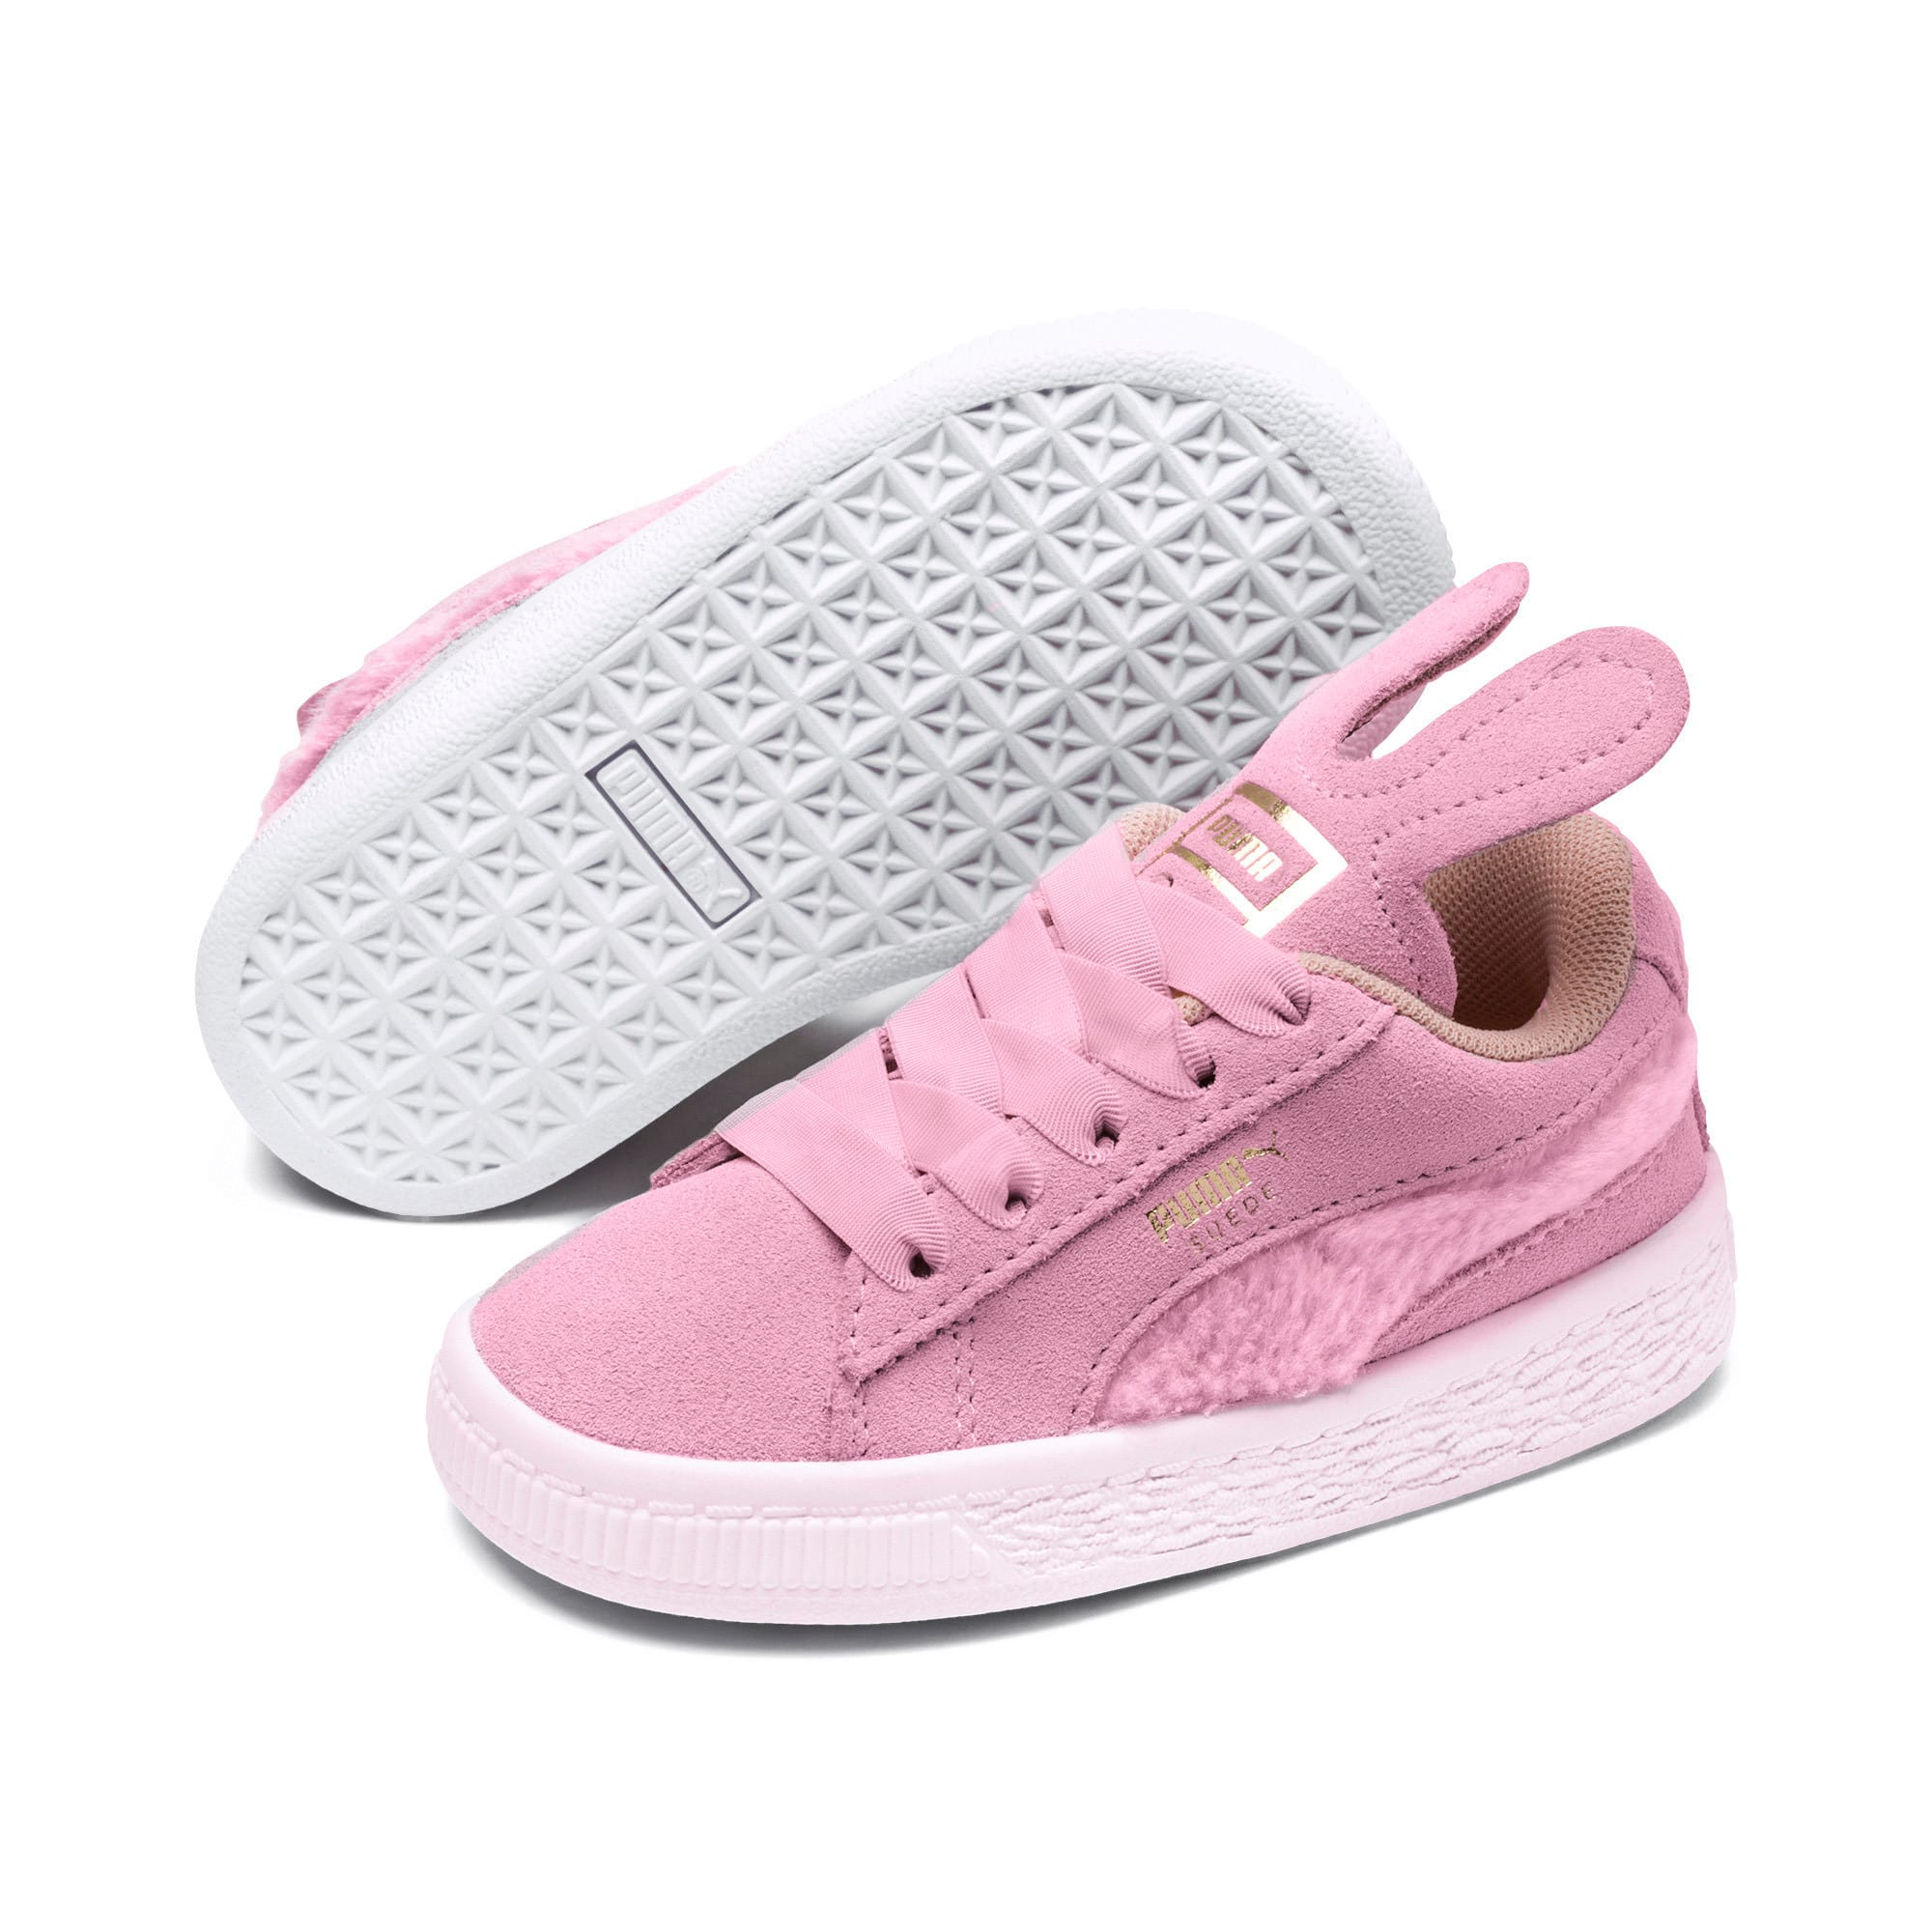 Suede Easter Alternate Closure Baby Sneaker, Pale Pink-Coral Cloud, large